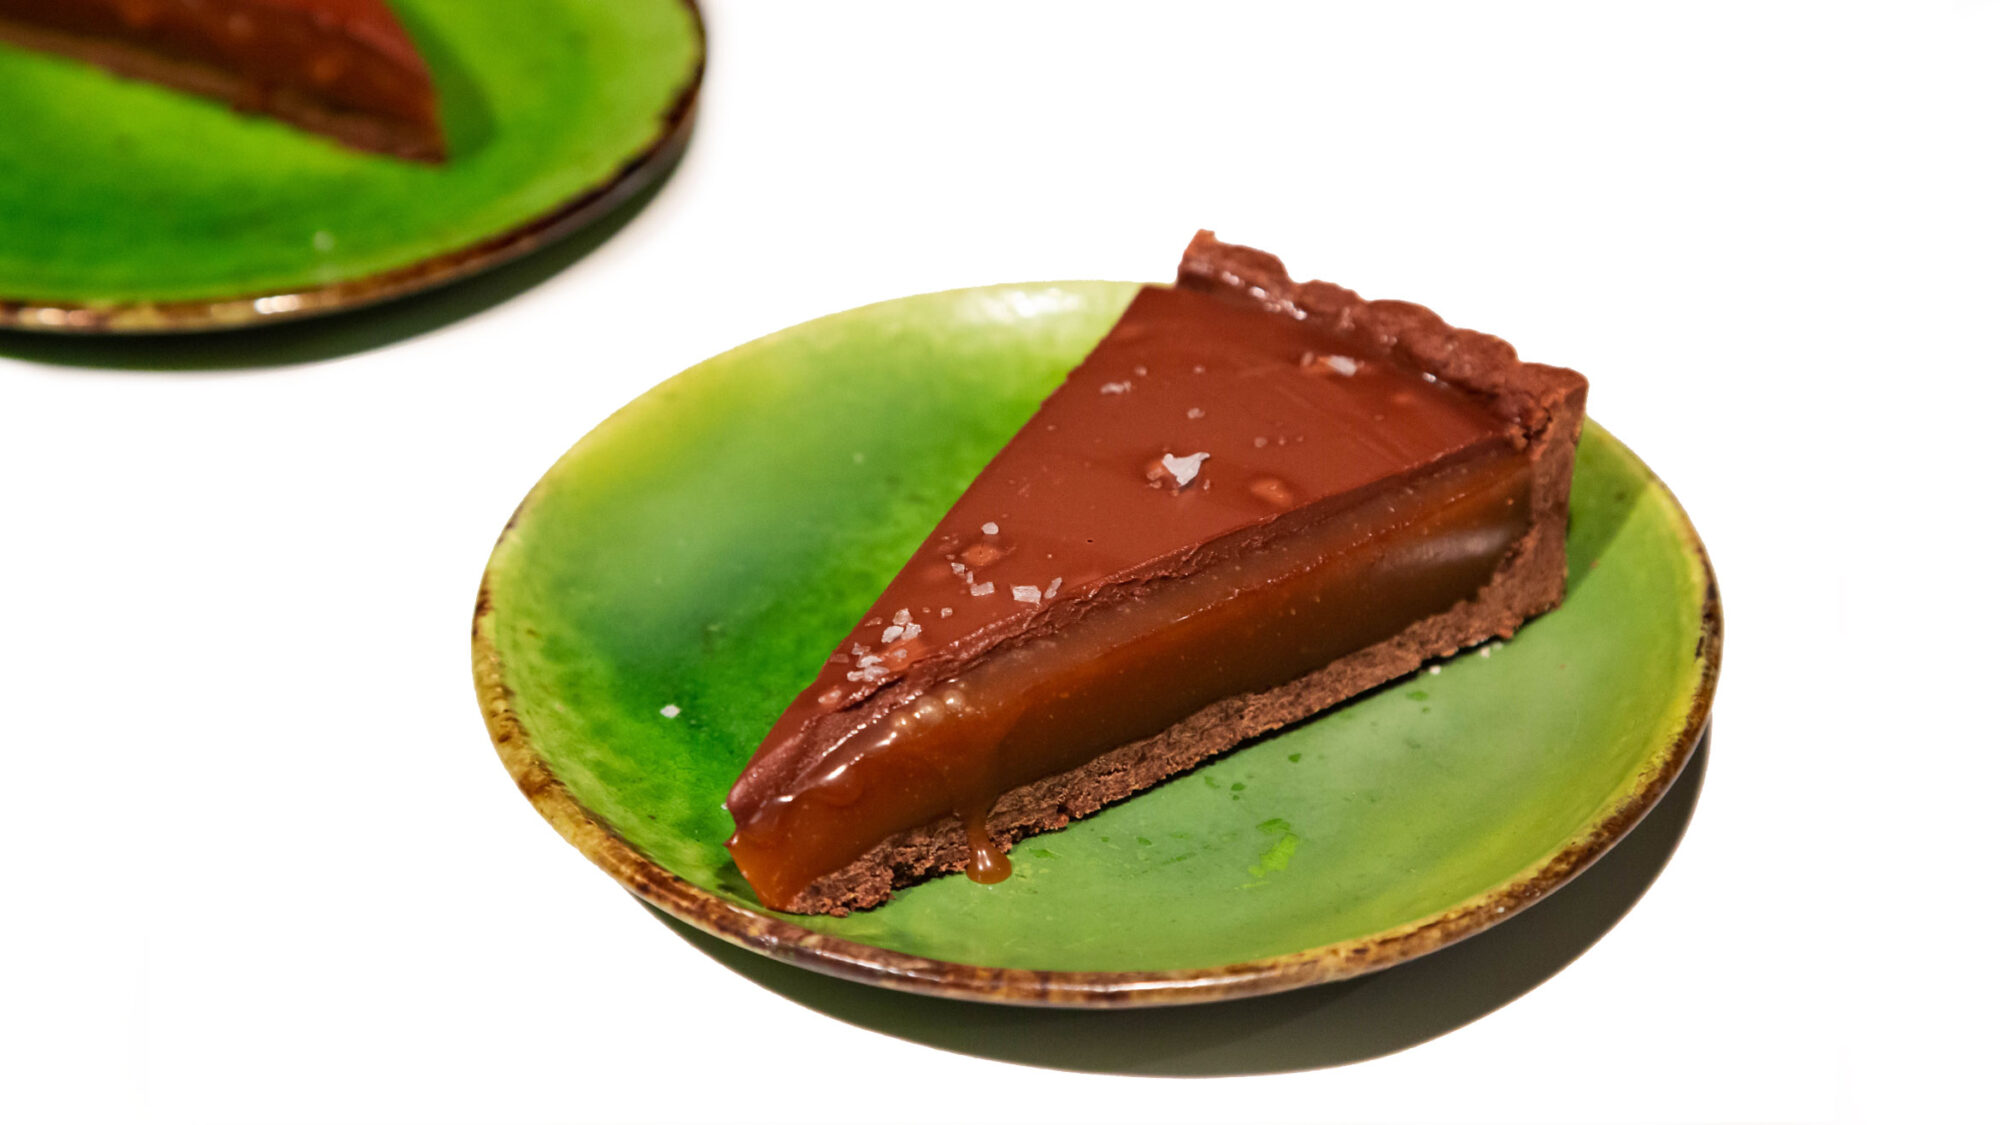 Article-The-Last-Course-Claudia-Flemming-Chocolate-Caramel-Tart